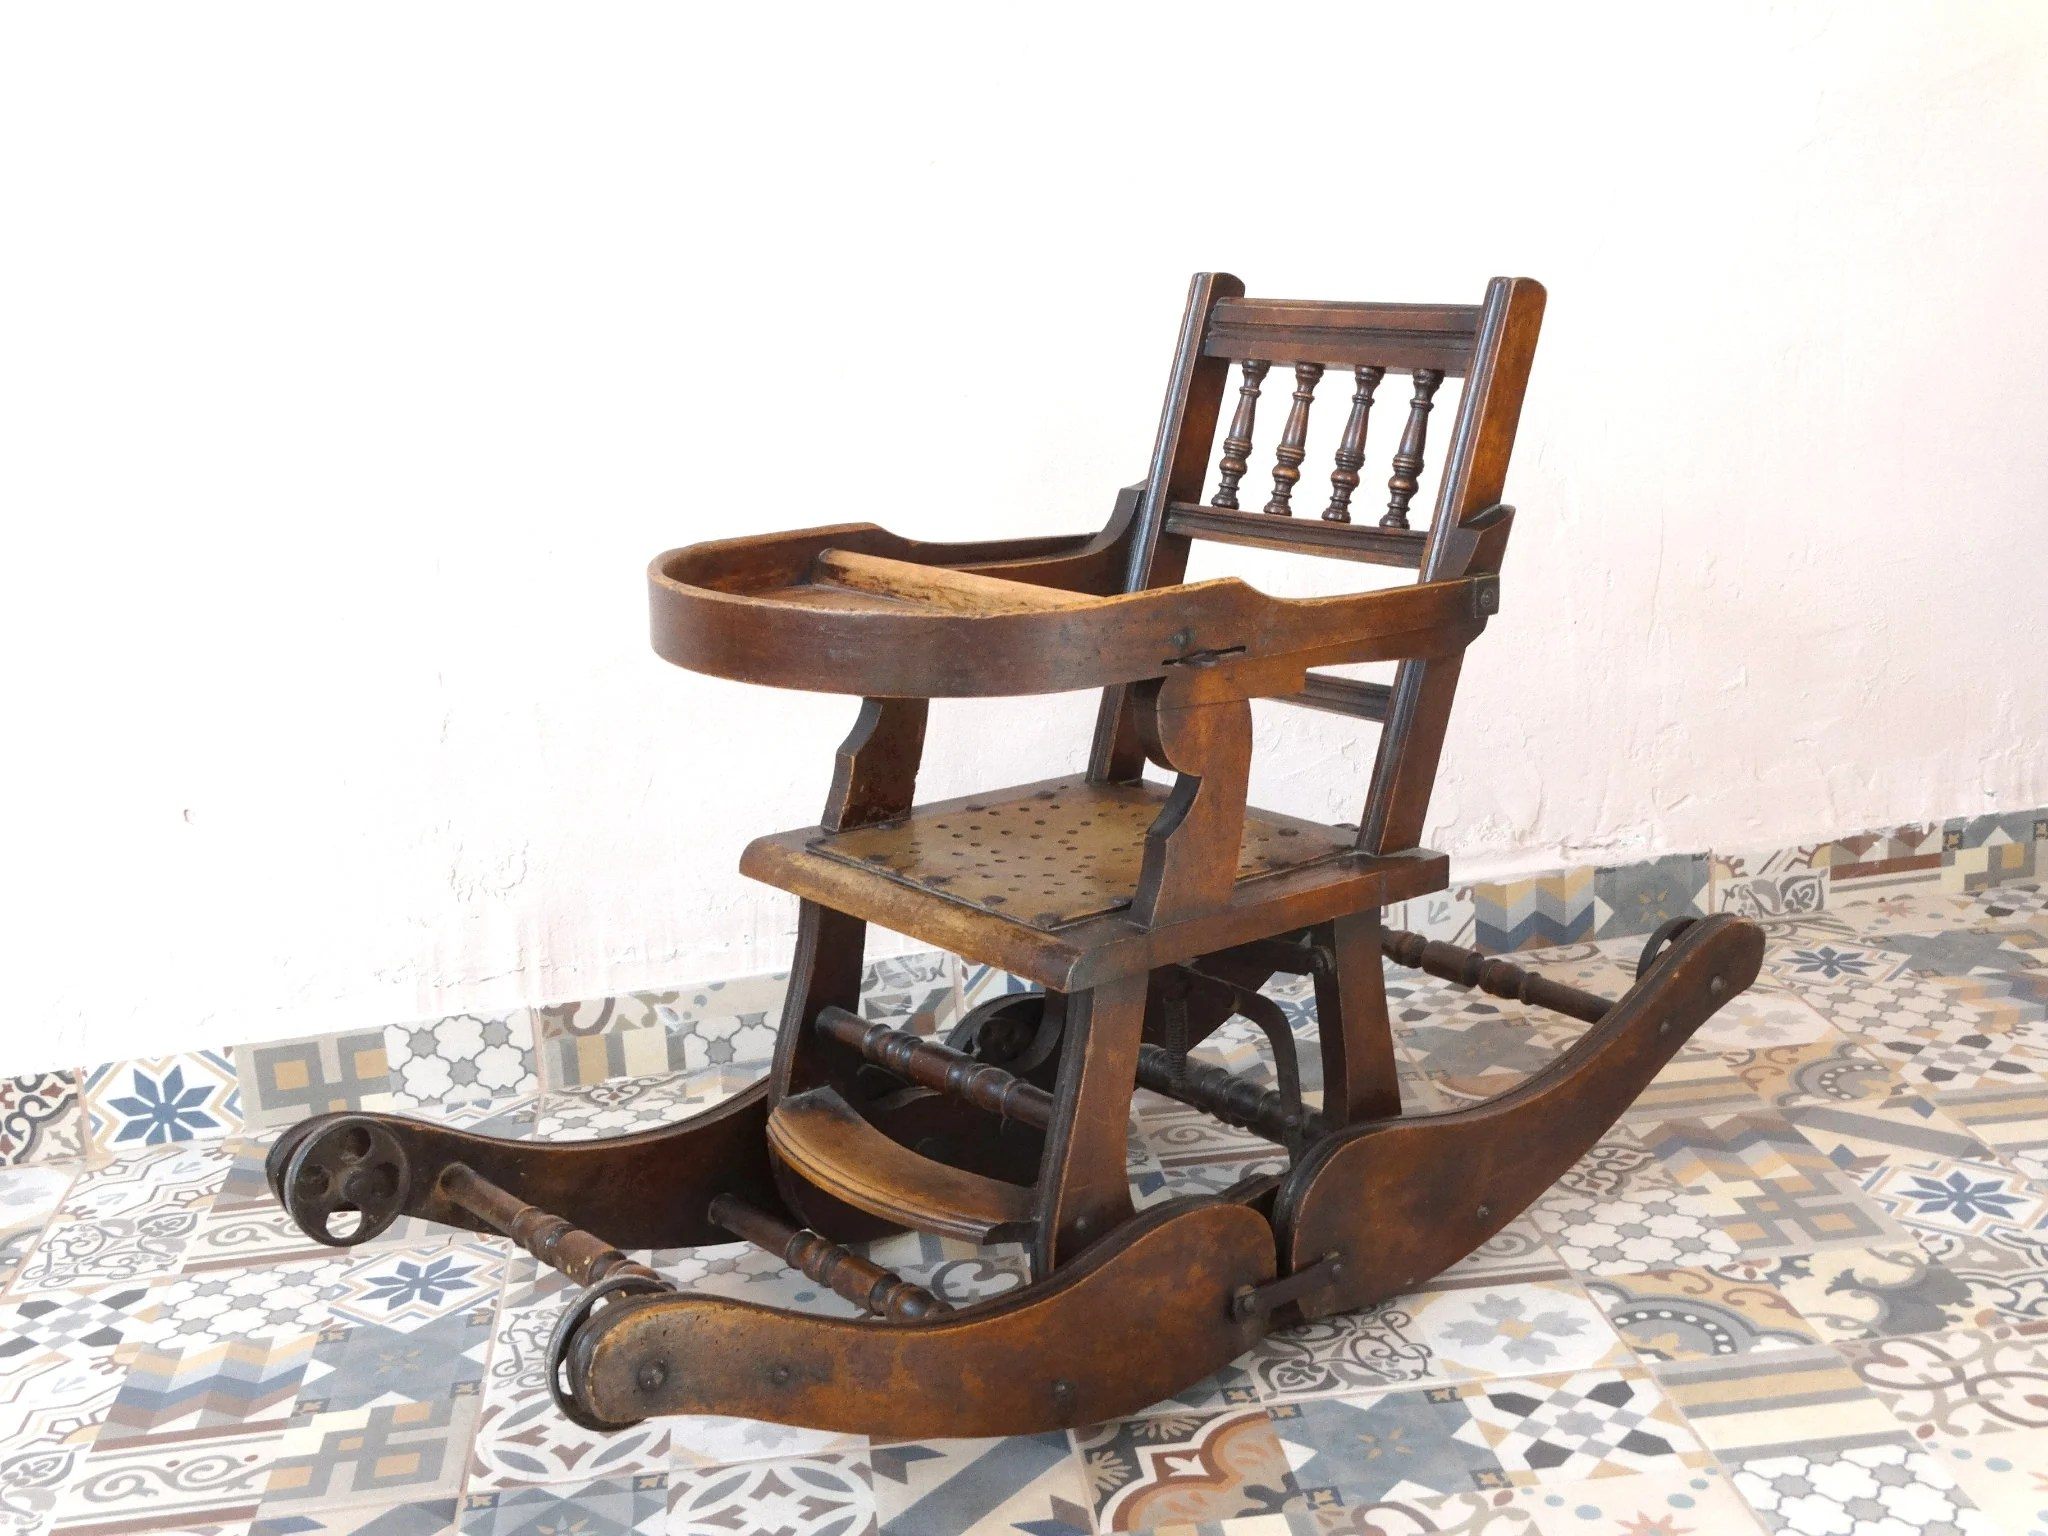 Baby Rocking Chairs Antique Rocking Chair High Chair Victorian Wooden Metamorphic Chair Antique Rocker Baby Chair Old Chair Old Rocker For Babies Rocker